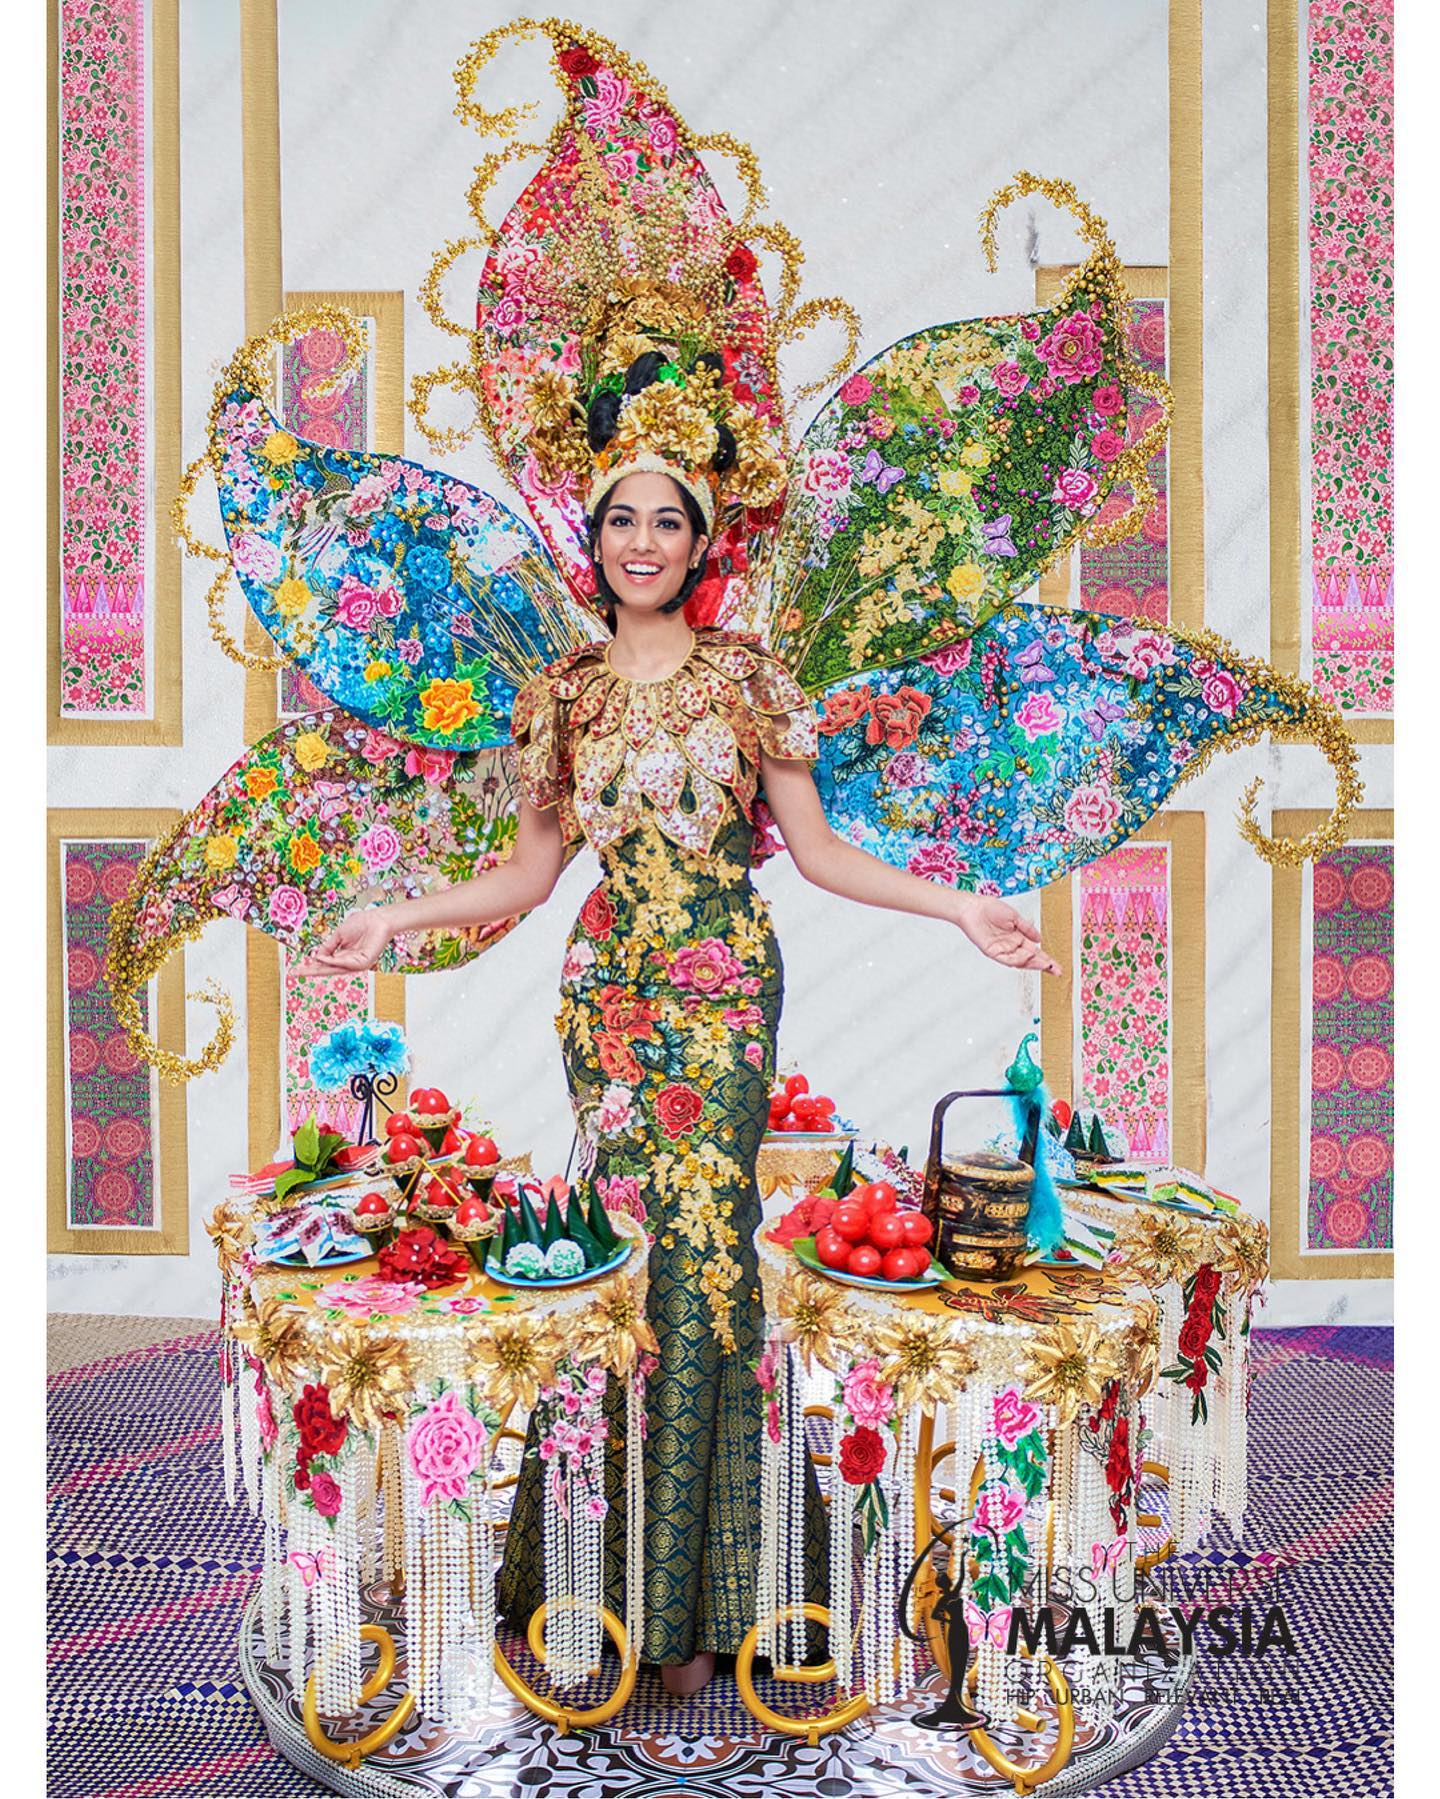 Malaysian wins Best National Costume at Miss Universe 2019